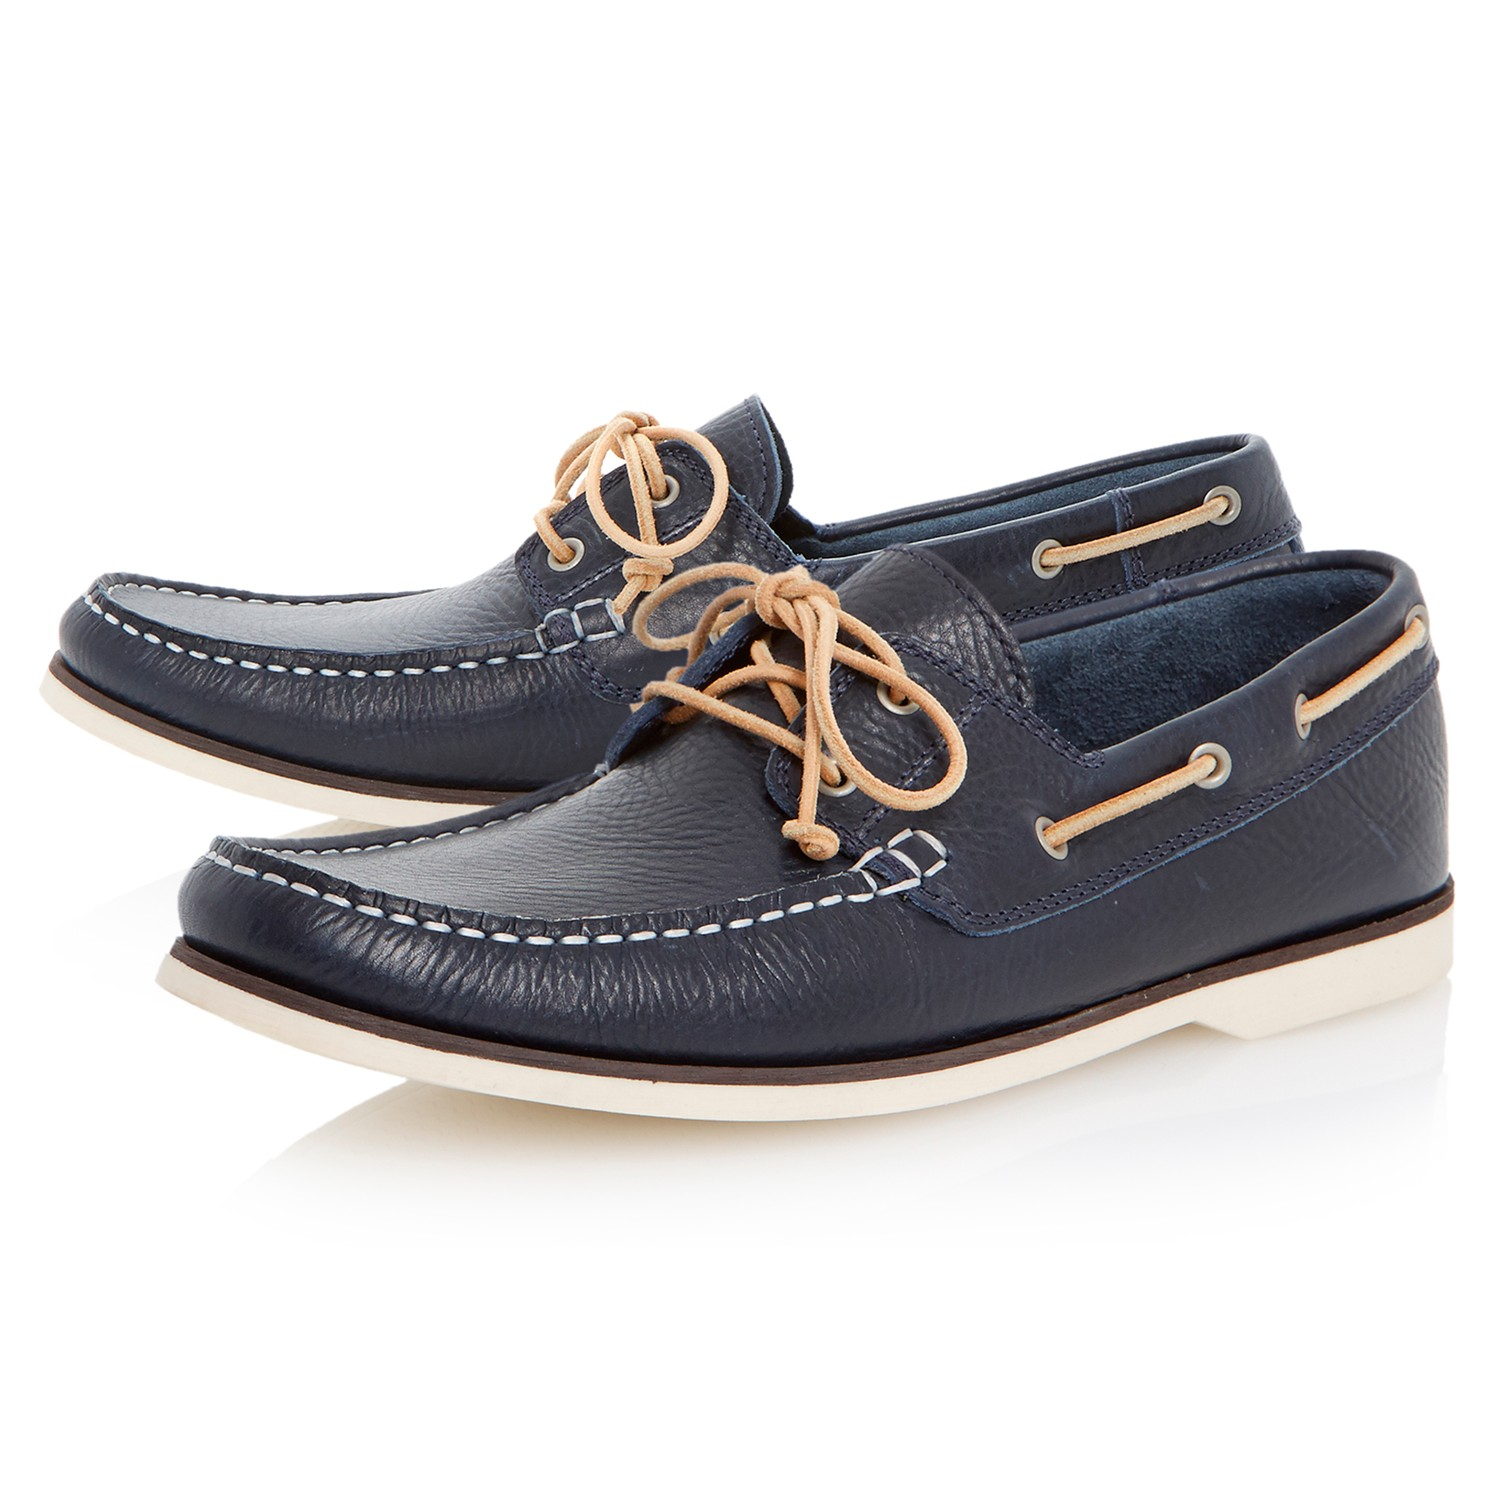 bertie battleship slip on casual boat shoes in black for